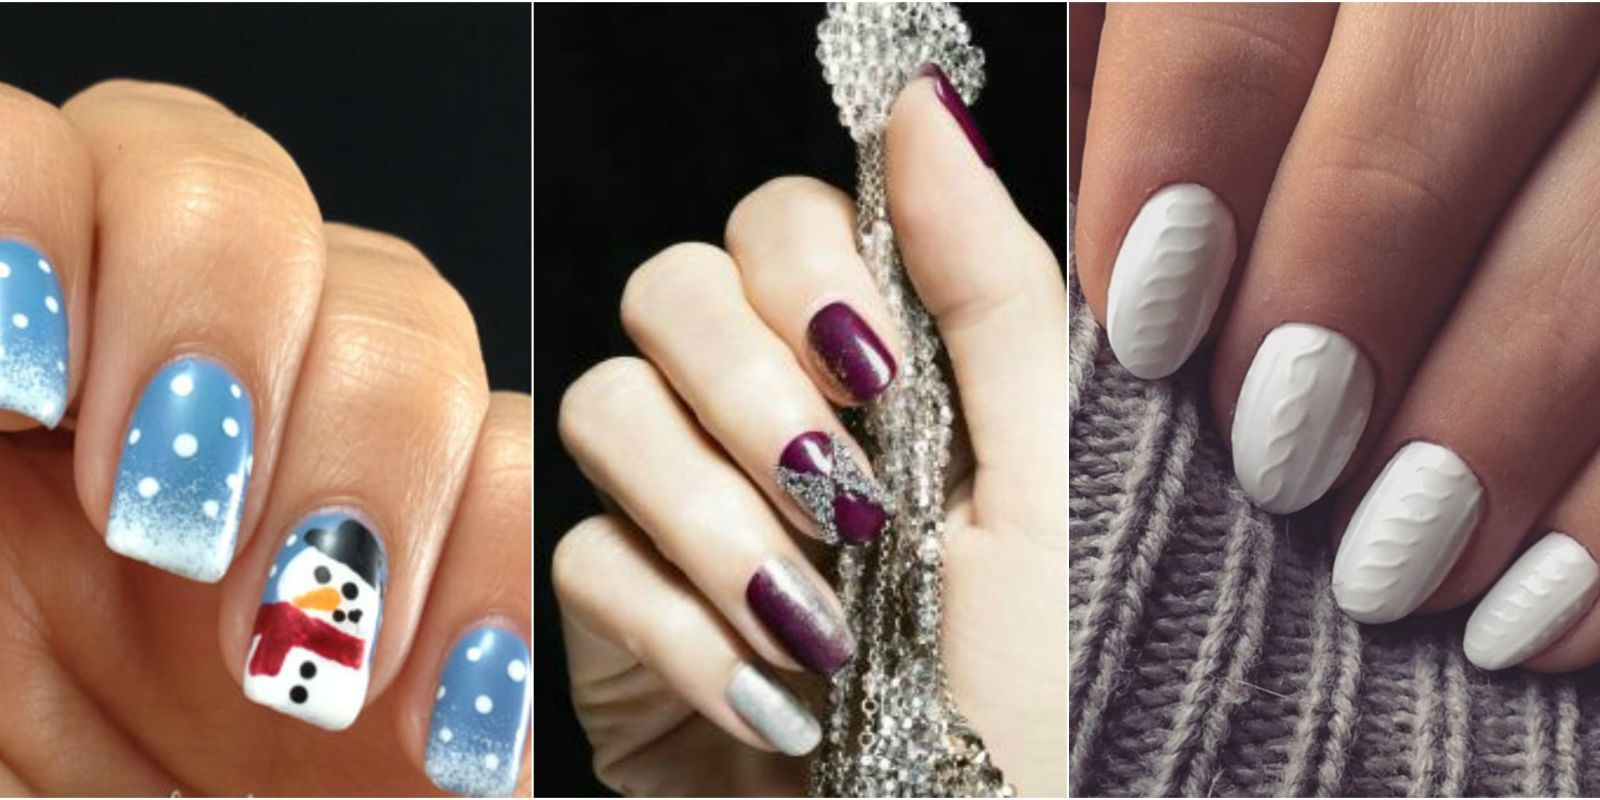 Winter Nail Designs - YourBeautyCraze.com